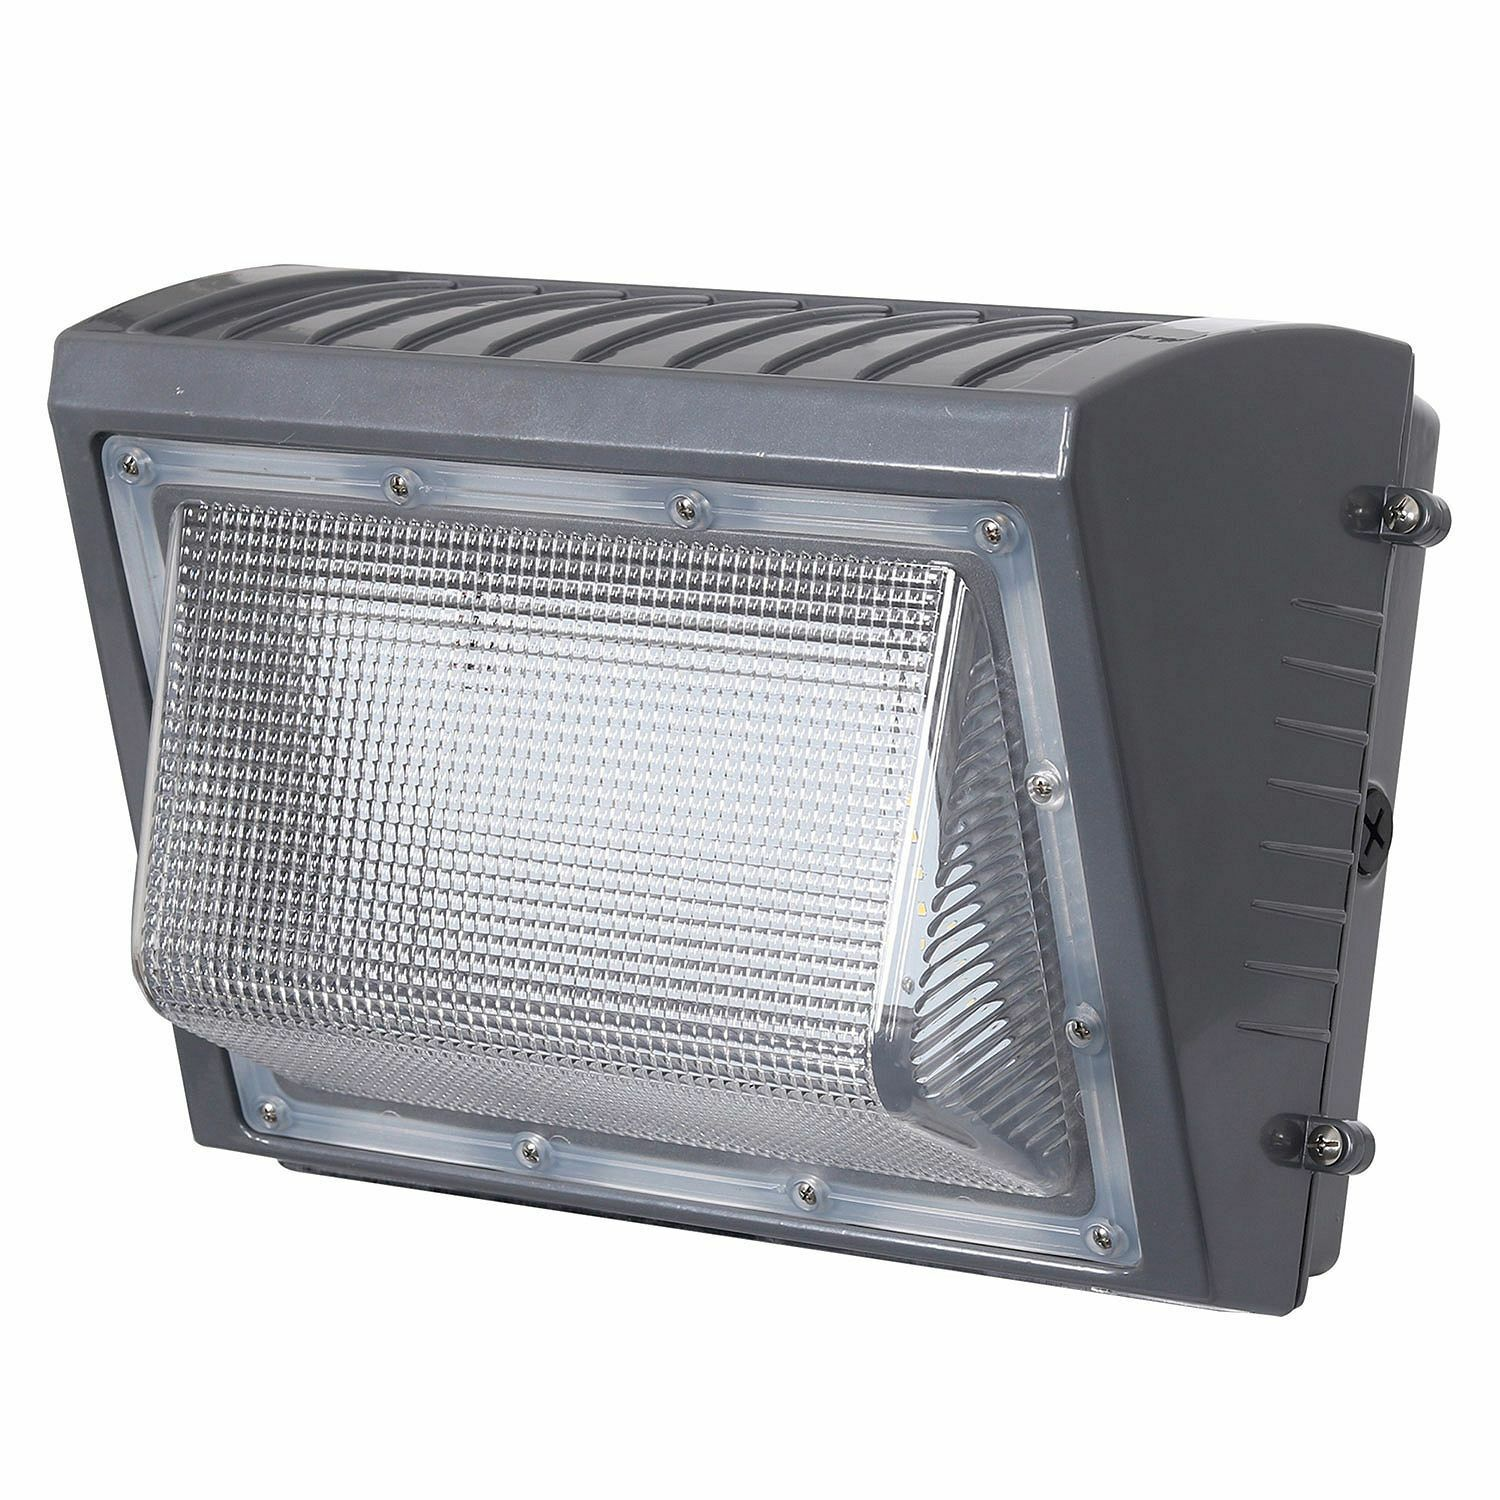 LED de luz de Seguridad Rectangular Honeywell, walllight 6000 Lumen gris Titanio